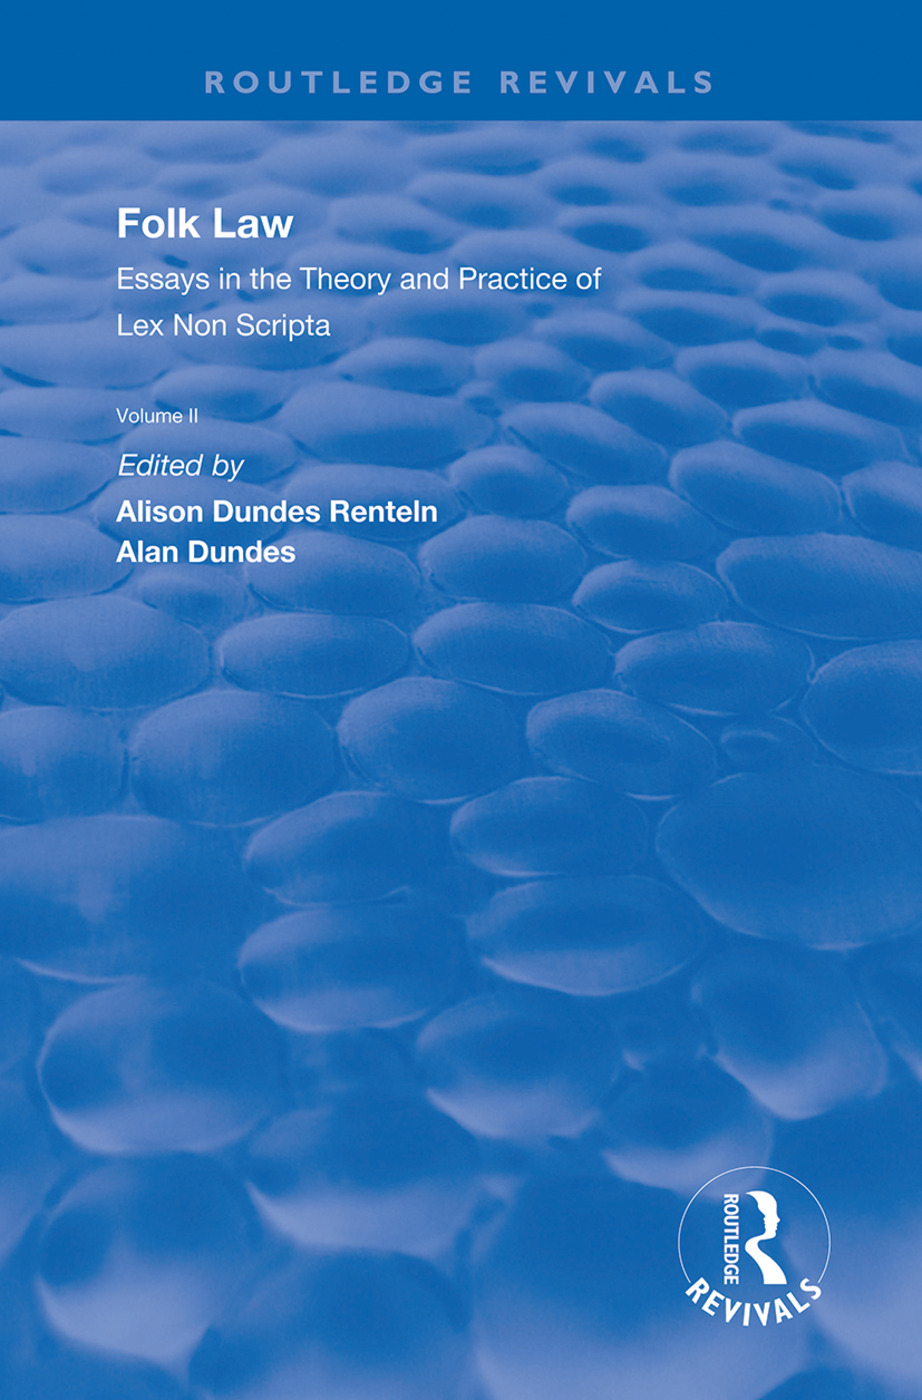 Folk Law: Essays in the Theory and Practice of Lex Non Scripta: Volume II book cover